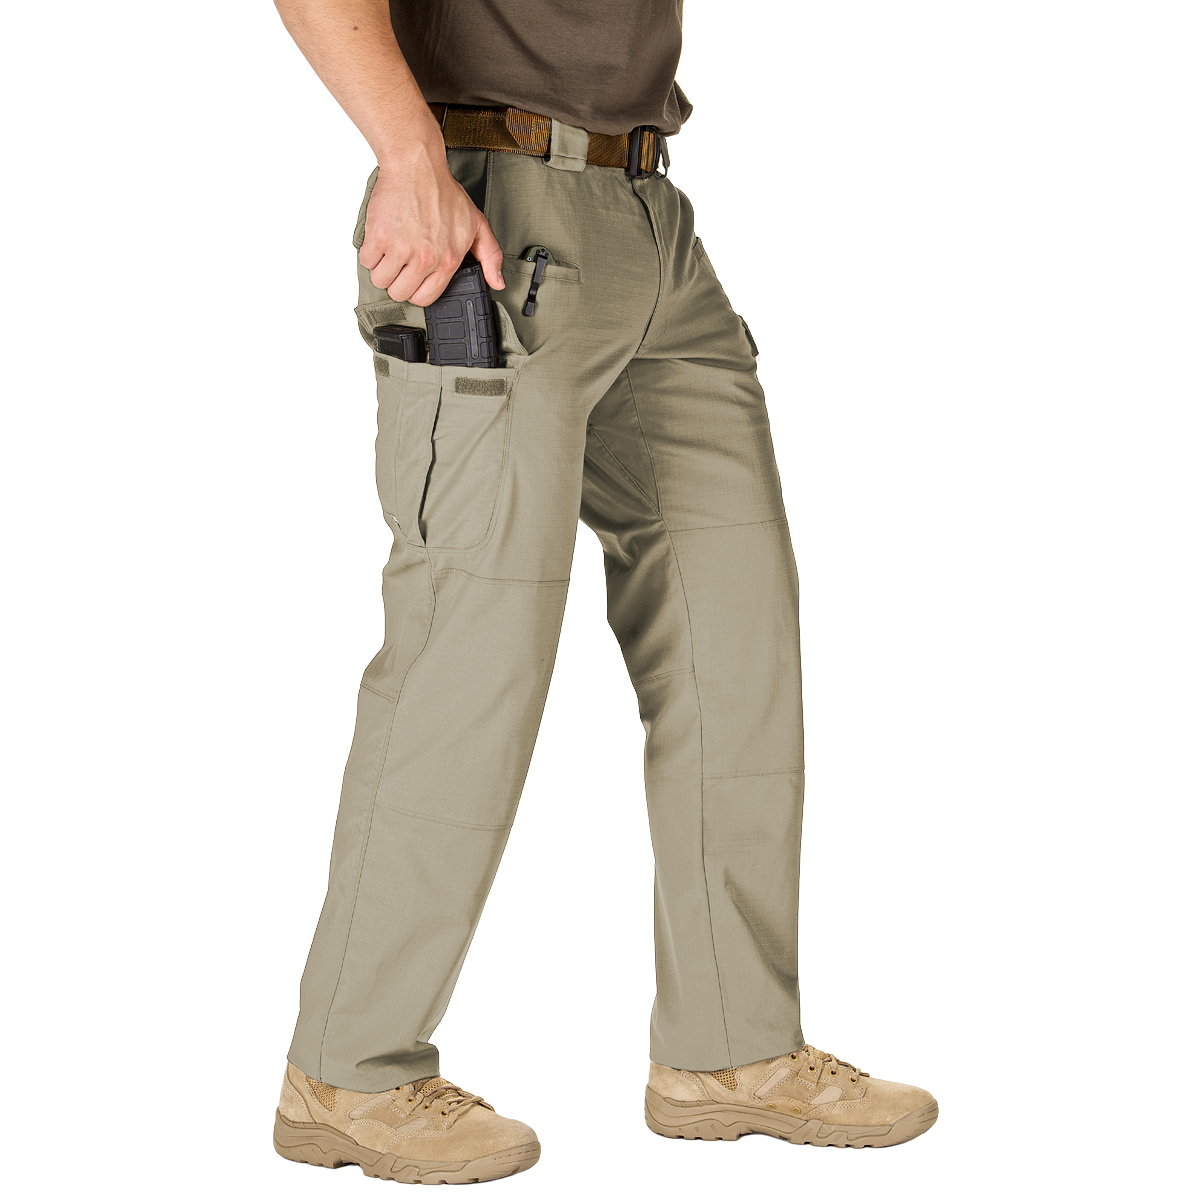 Preferred by law enforcement, tactical operators and outdoor enthusiasts, Pants are mission specific in a variety of styles including cargo pants, khaki pants, and work pants.